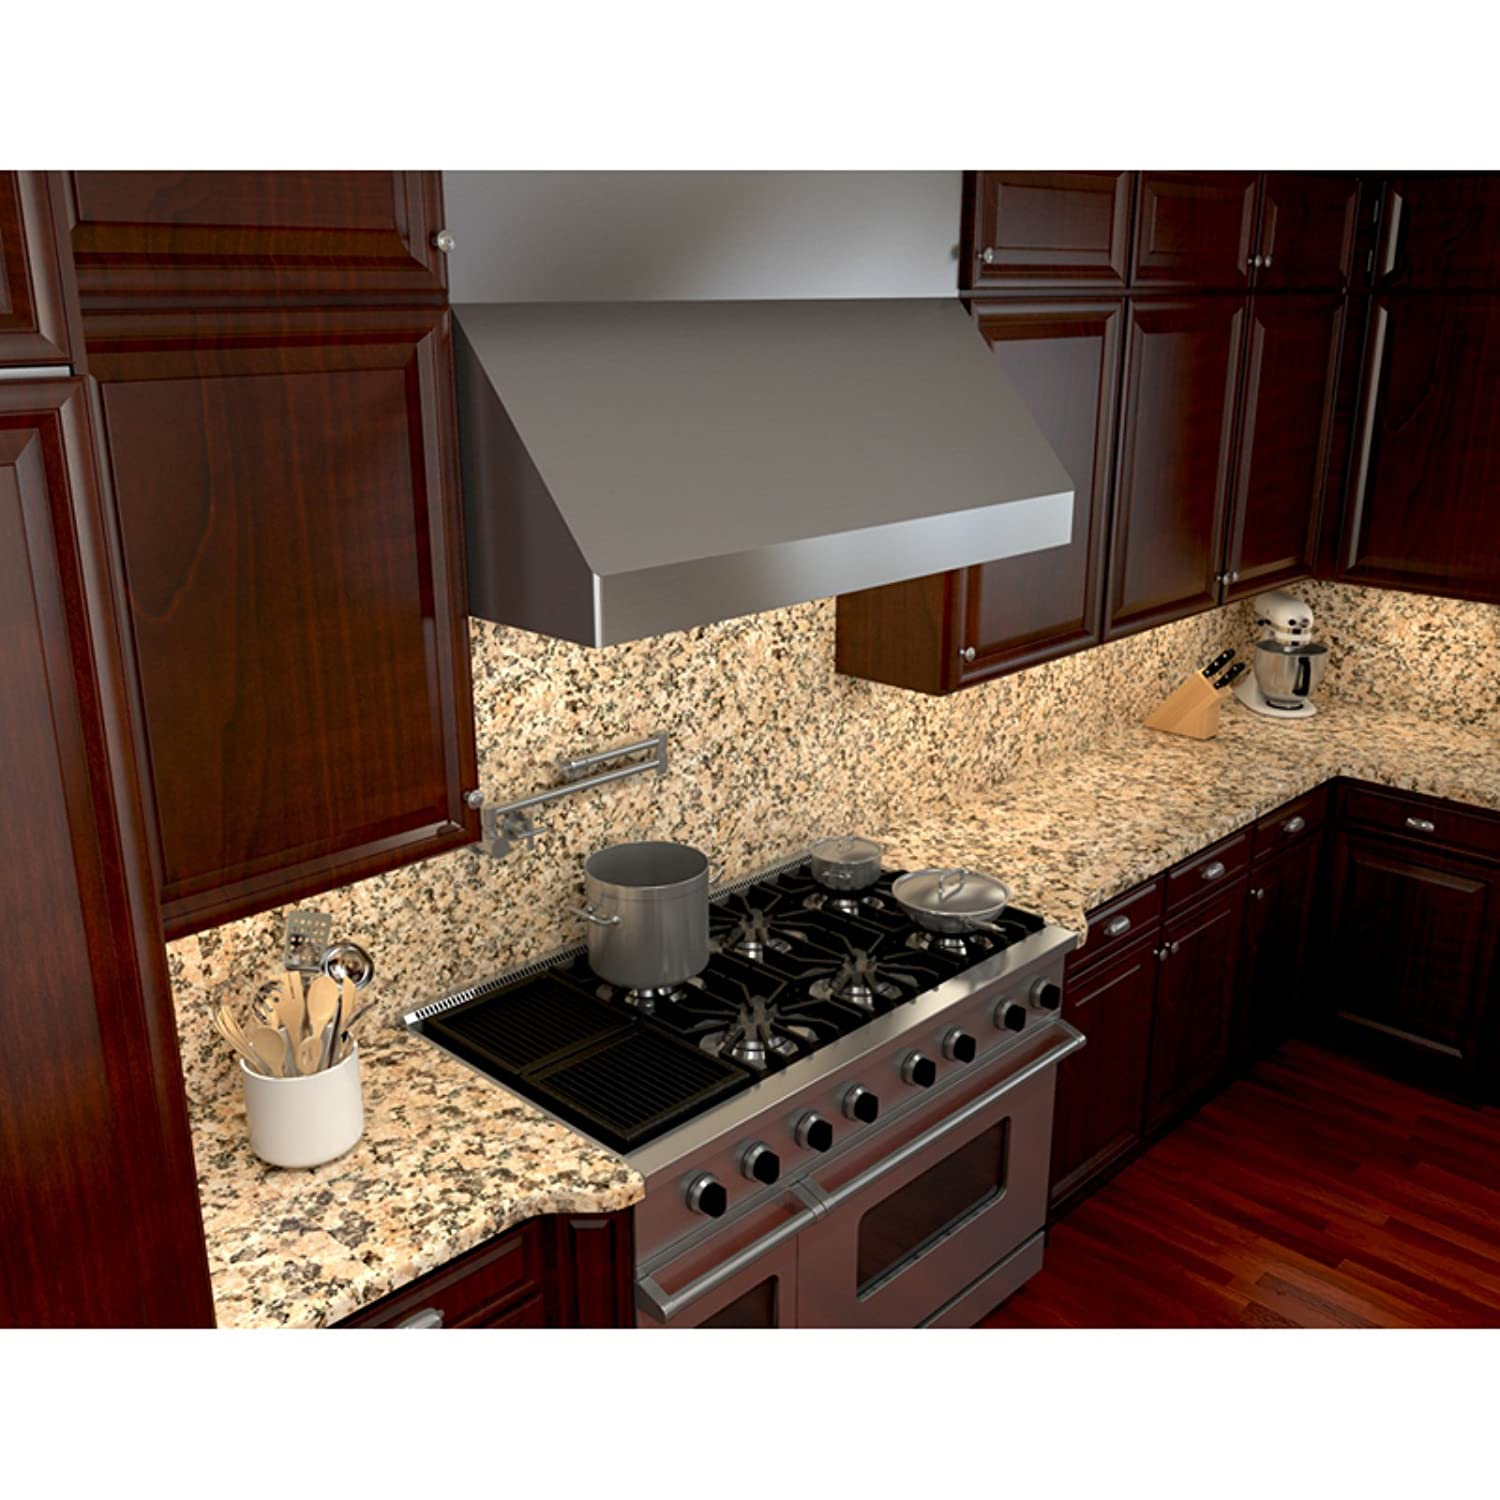 island custom range vent hood cabinet burrows stylish zephyr fungsional hoods commercial kitchen also for cabinets and kinds under